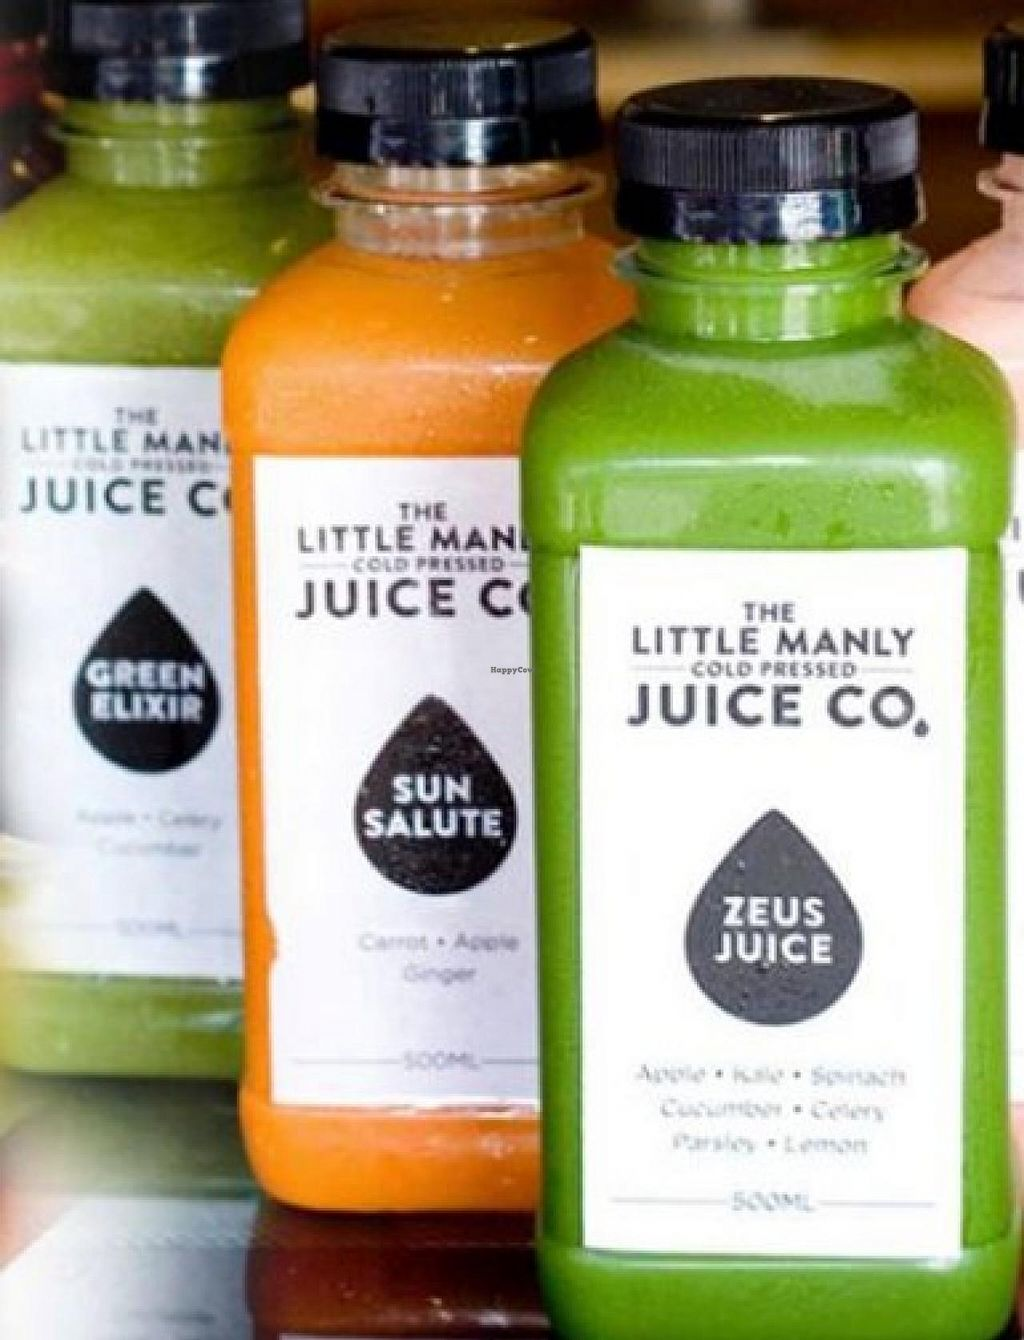 "Photo of The Little Manly Juice Co.  by <a href=""/members/profile/community"">community</a> <br/>The Little Manly Juice Co <br/> May 26, 2015  - <a href='/contact/abuse/image/58831/103563'>Report</a>"